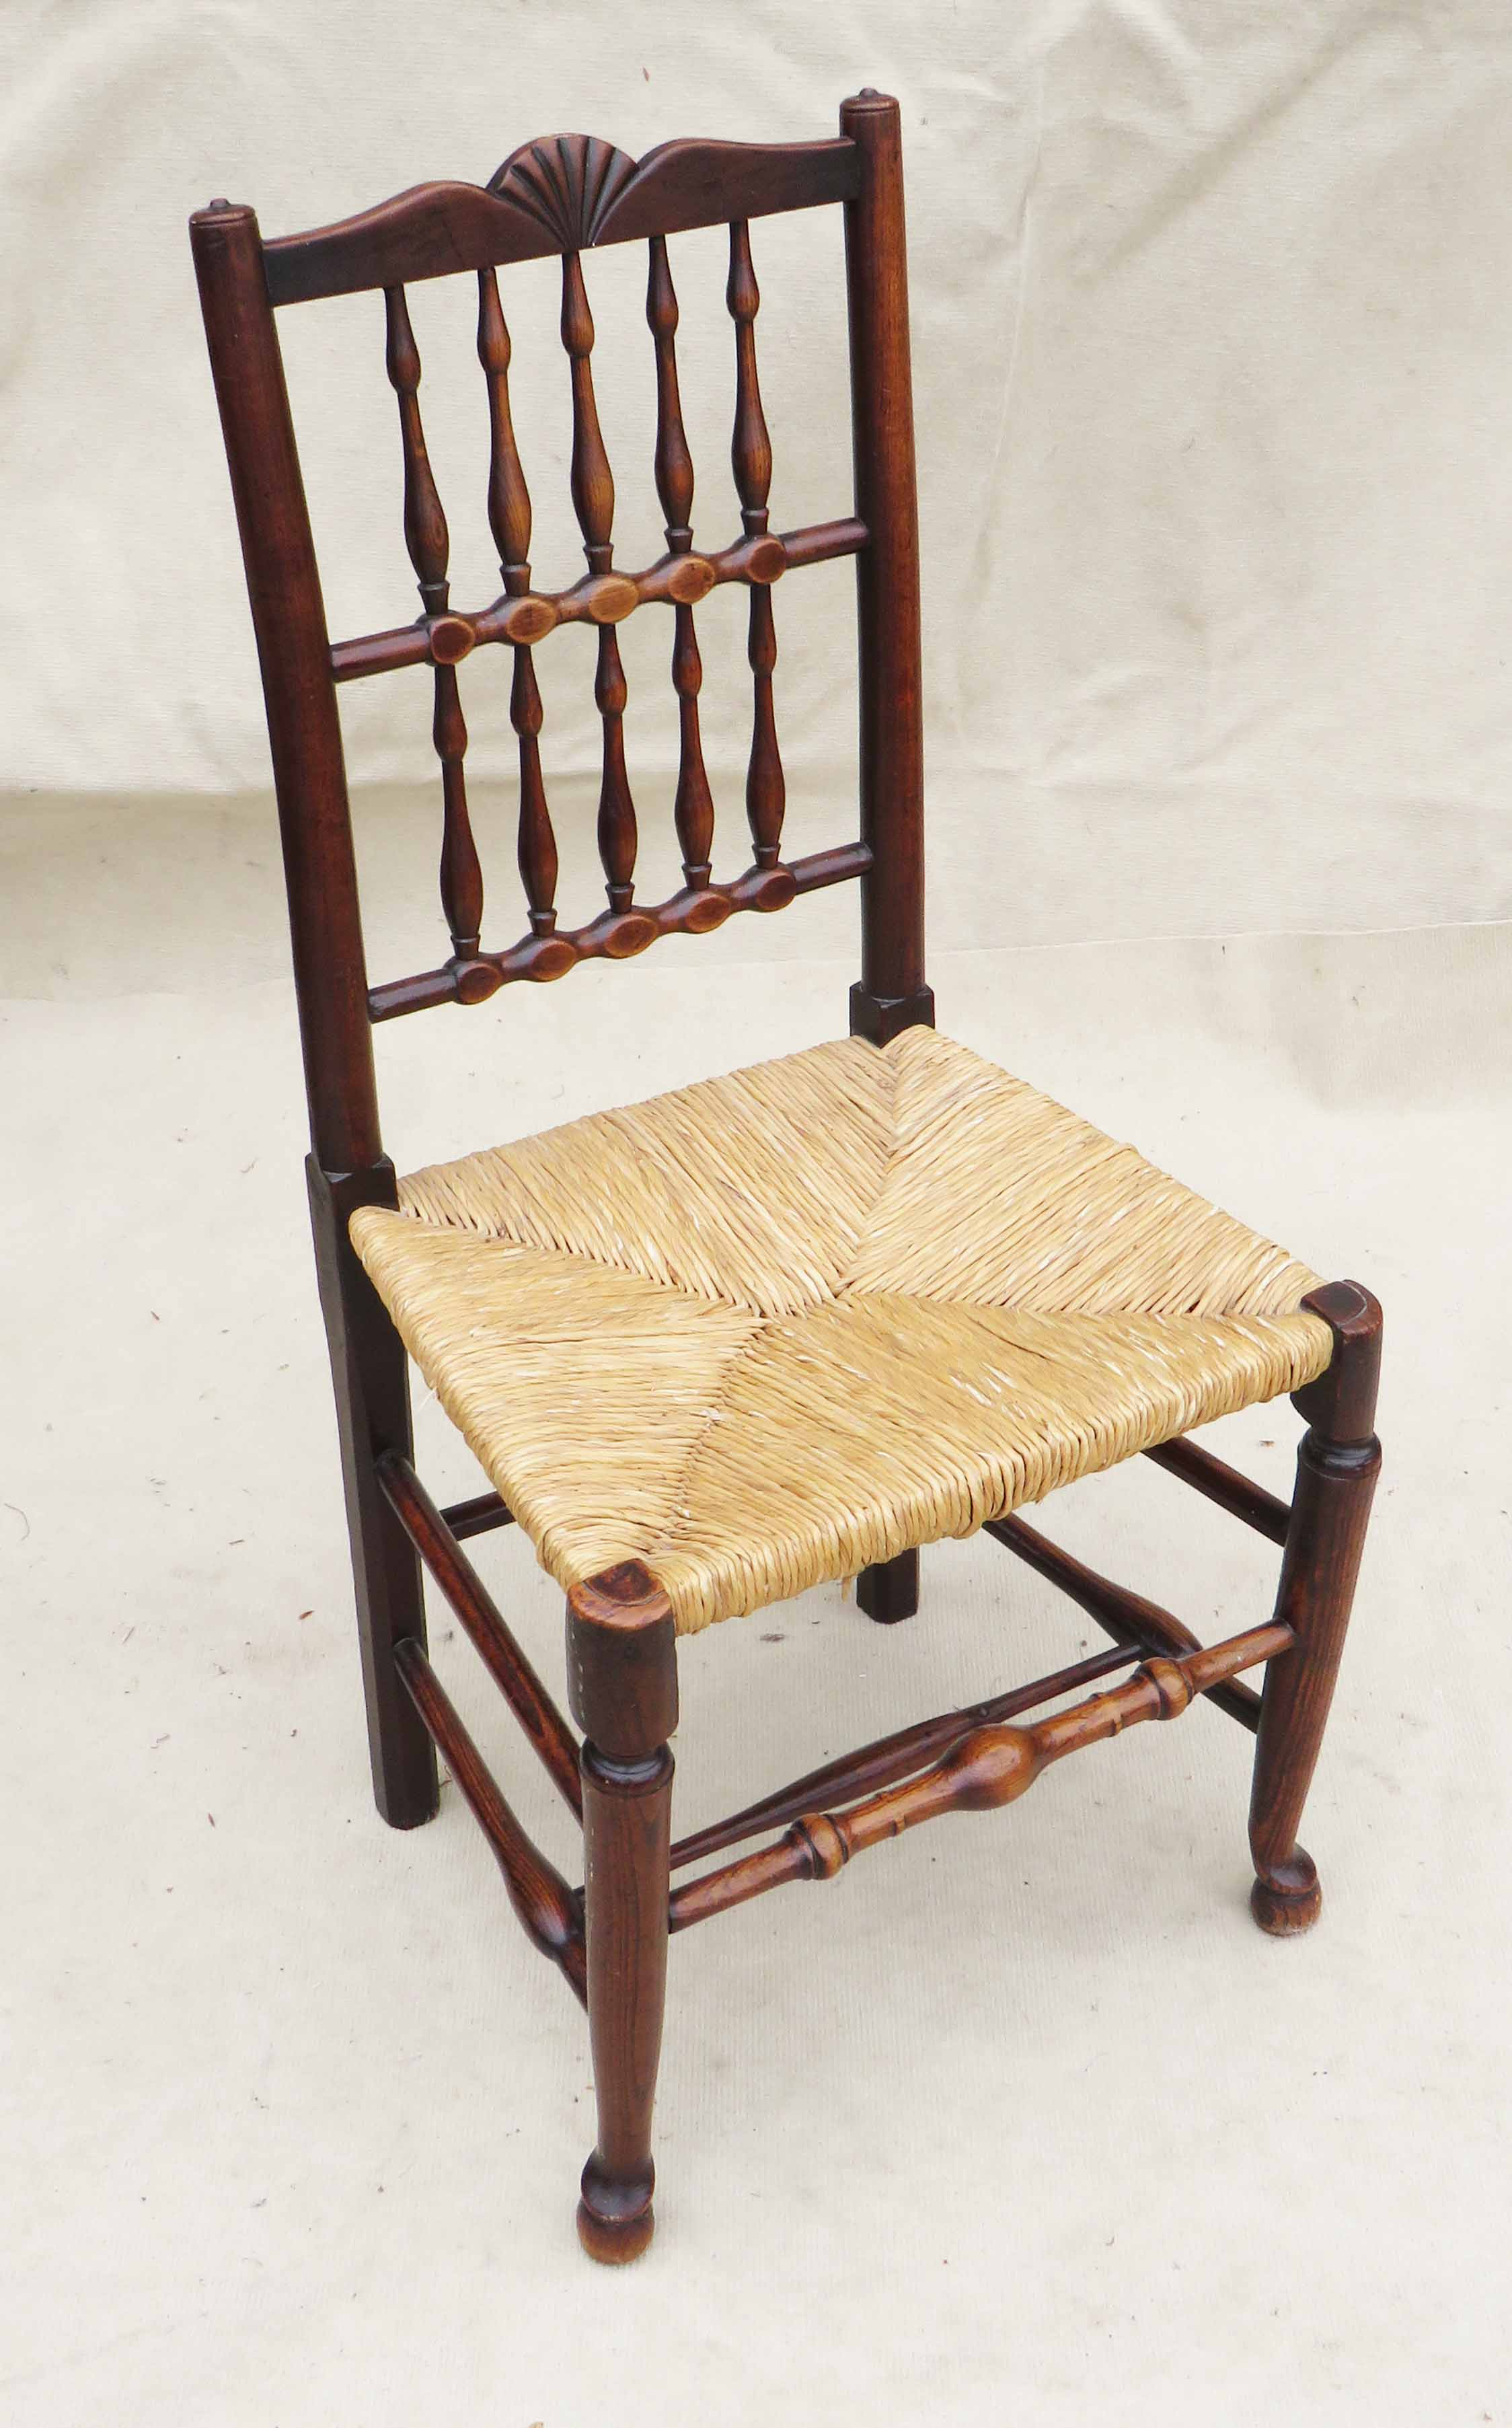 Matched Set Of 8 Spindle Back Dining Chairs, Early 19th Century - Image 4 of 12